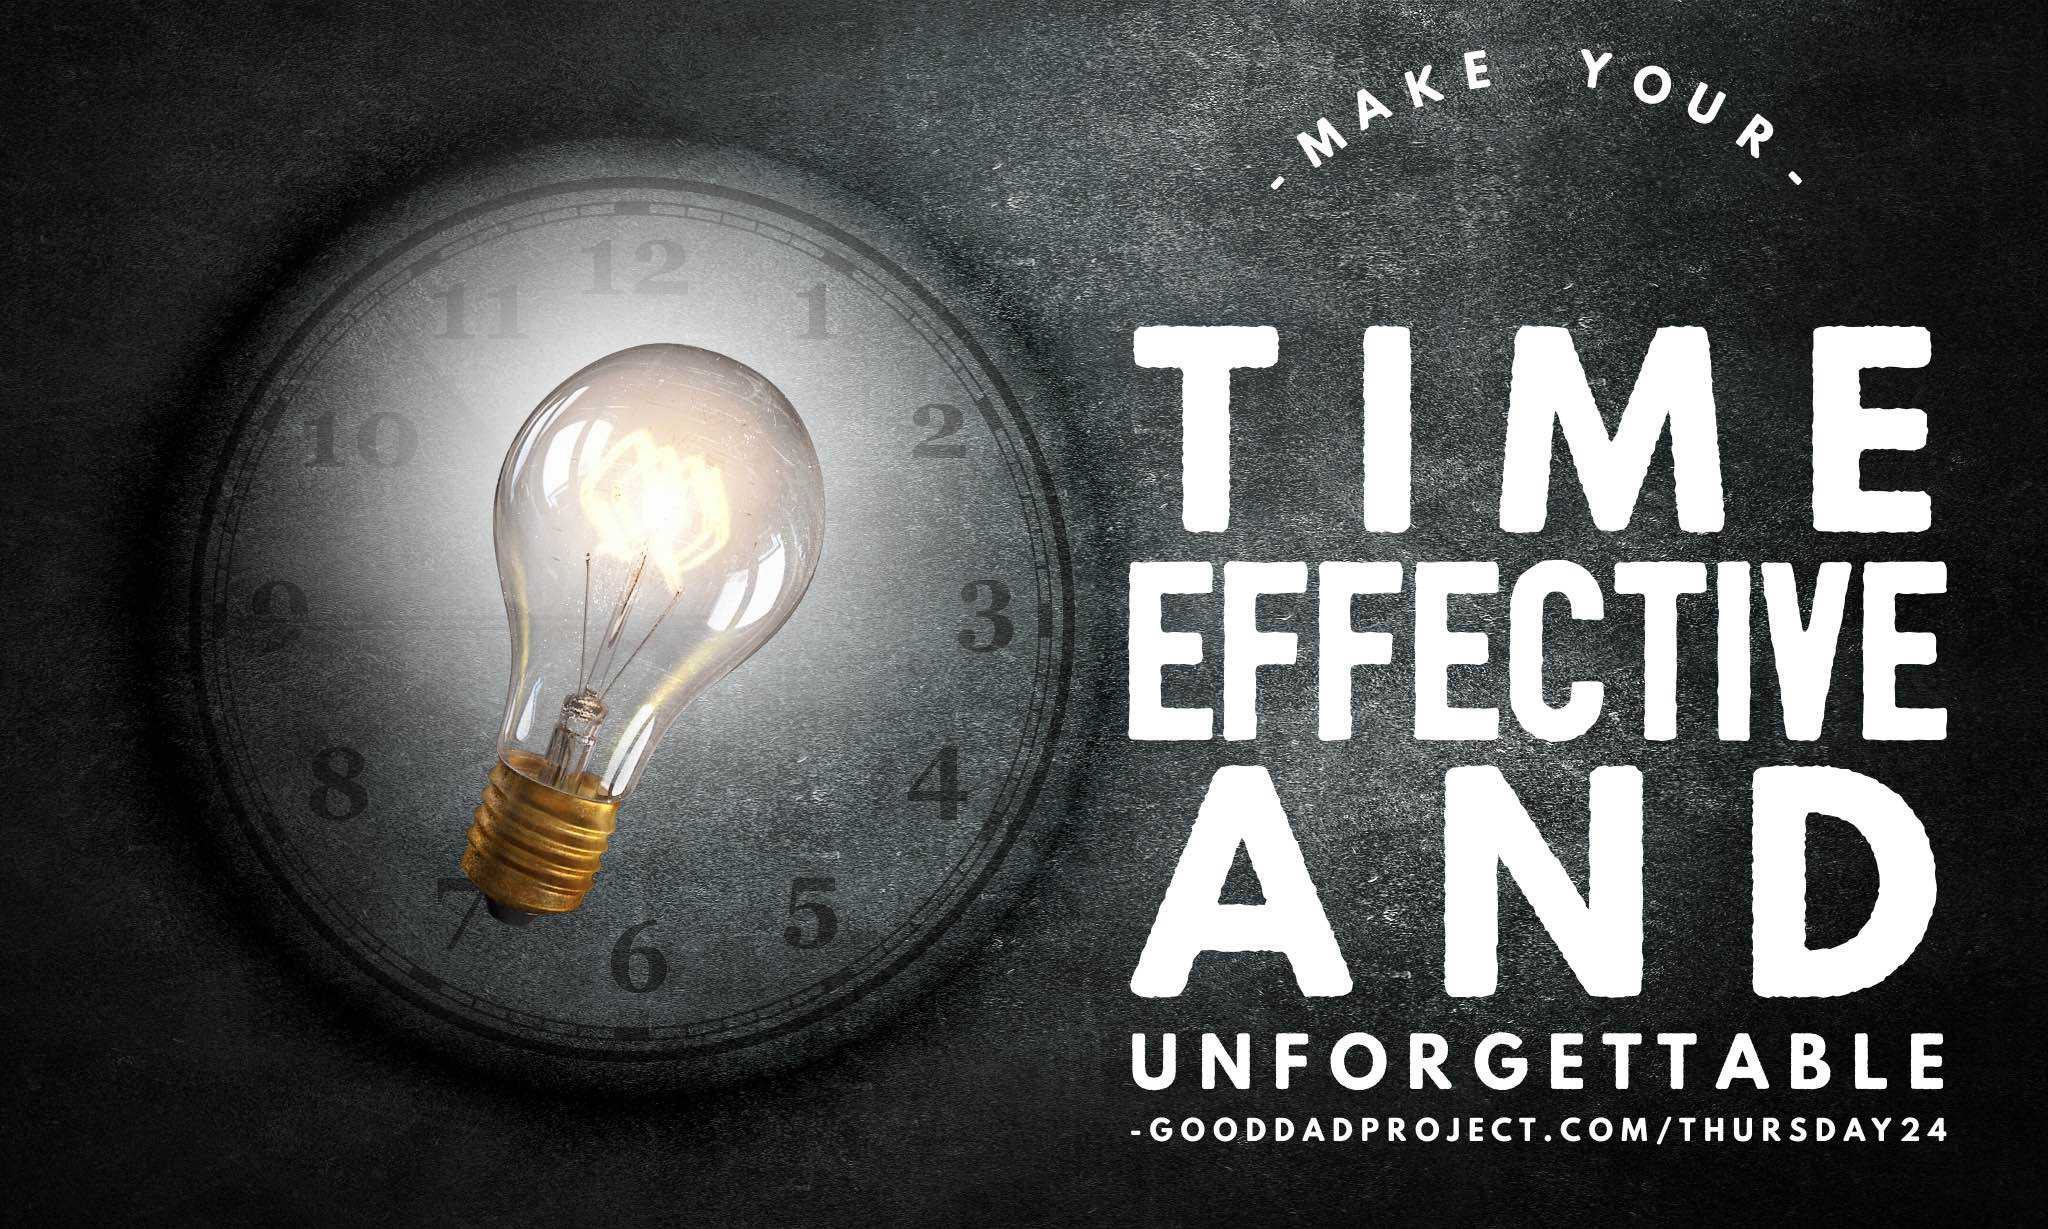 time effective